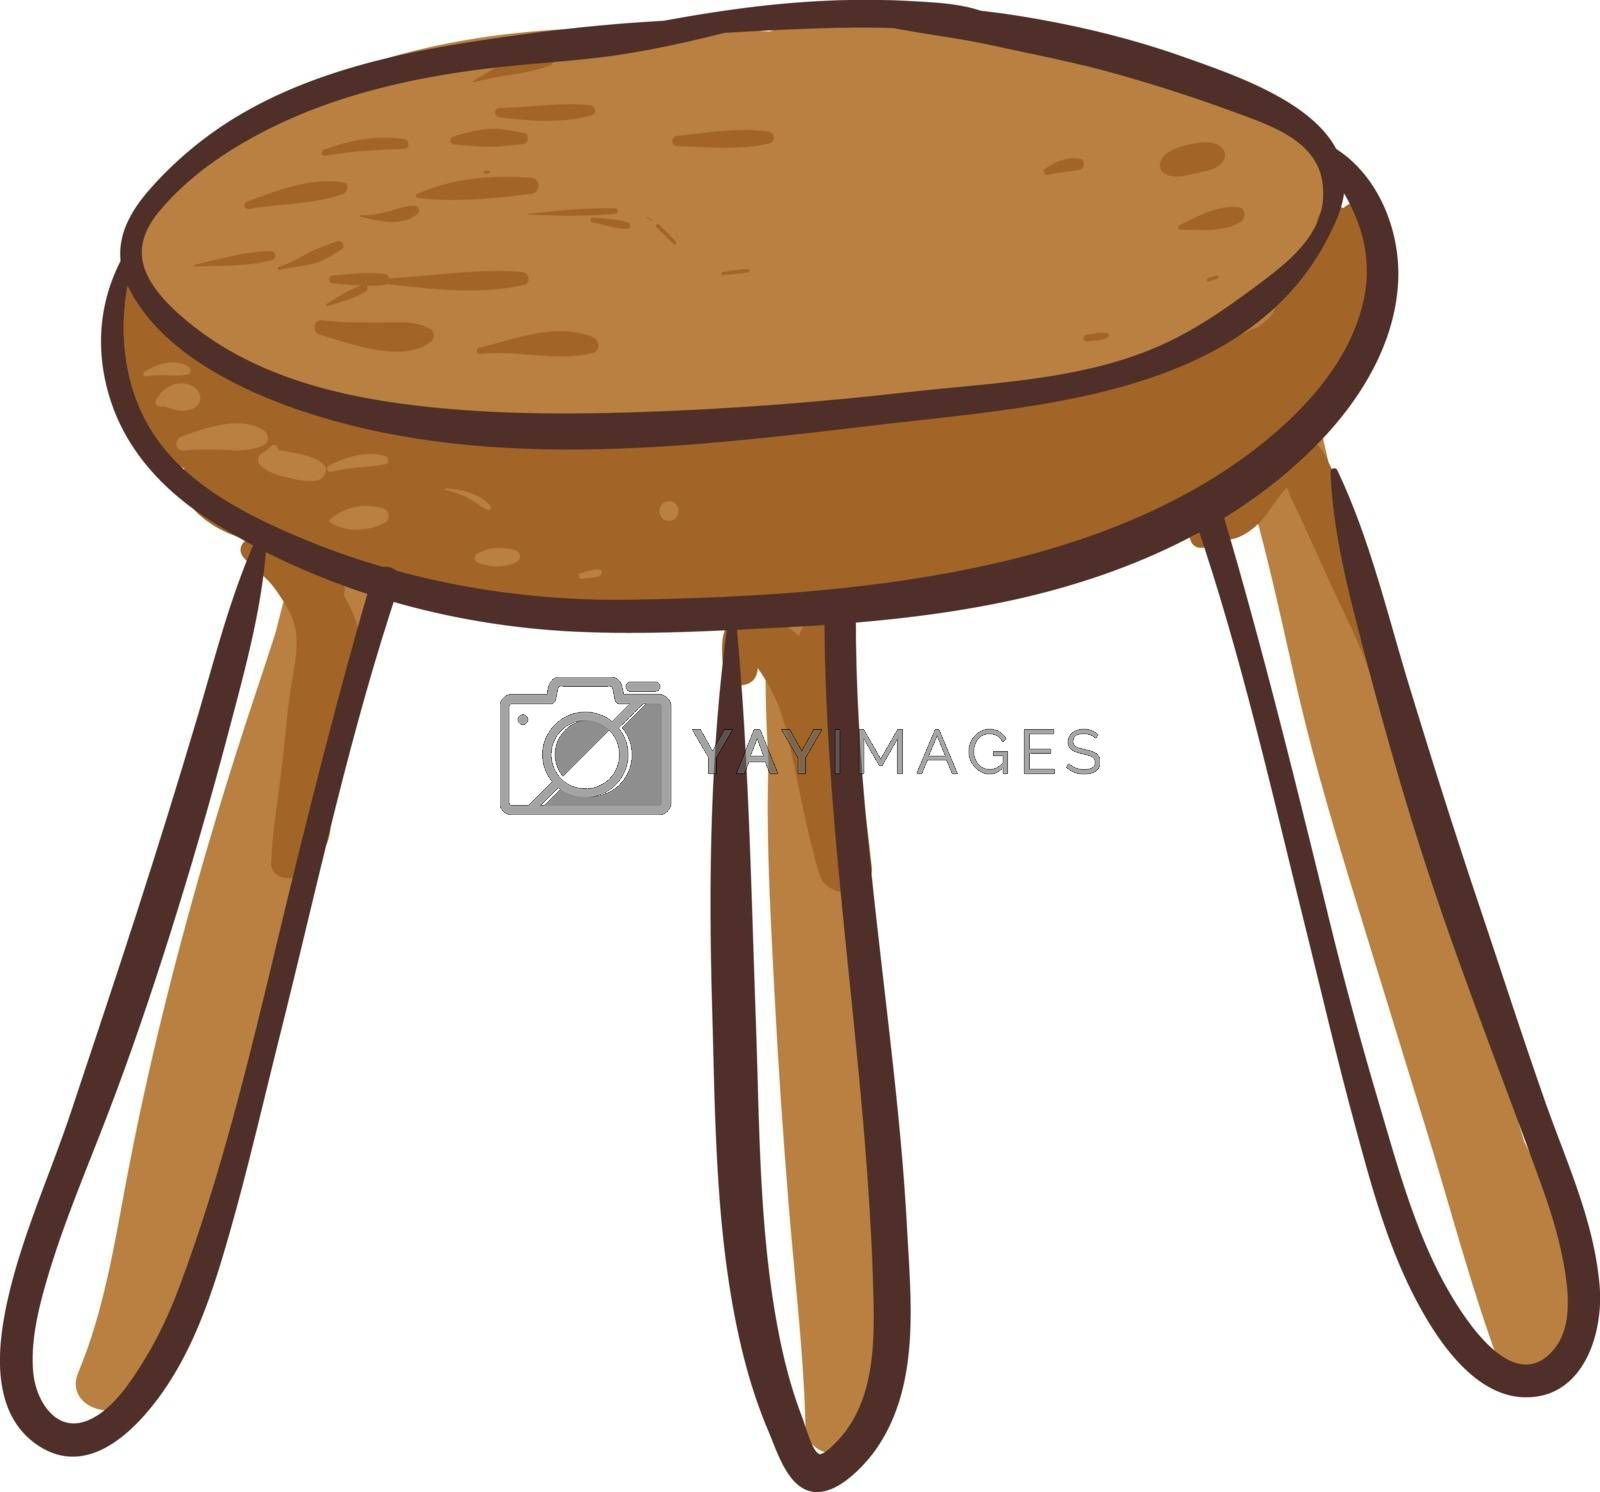 Royalty free image of Clipart of a round-shaped brown stool vector or color illustrati by Morphart